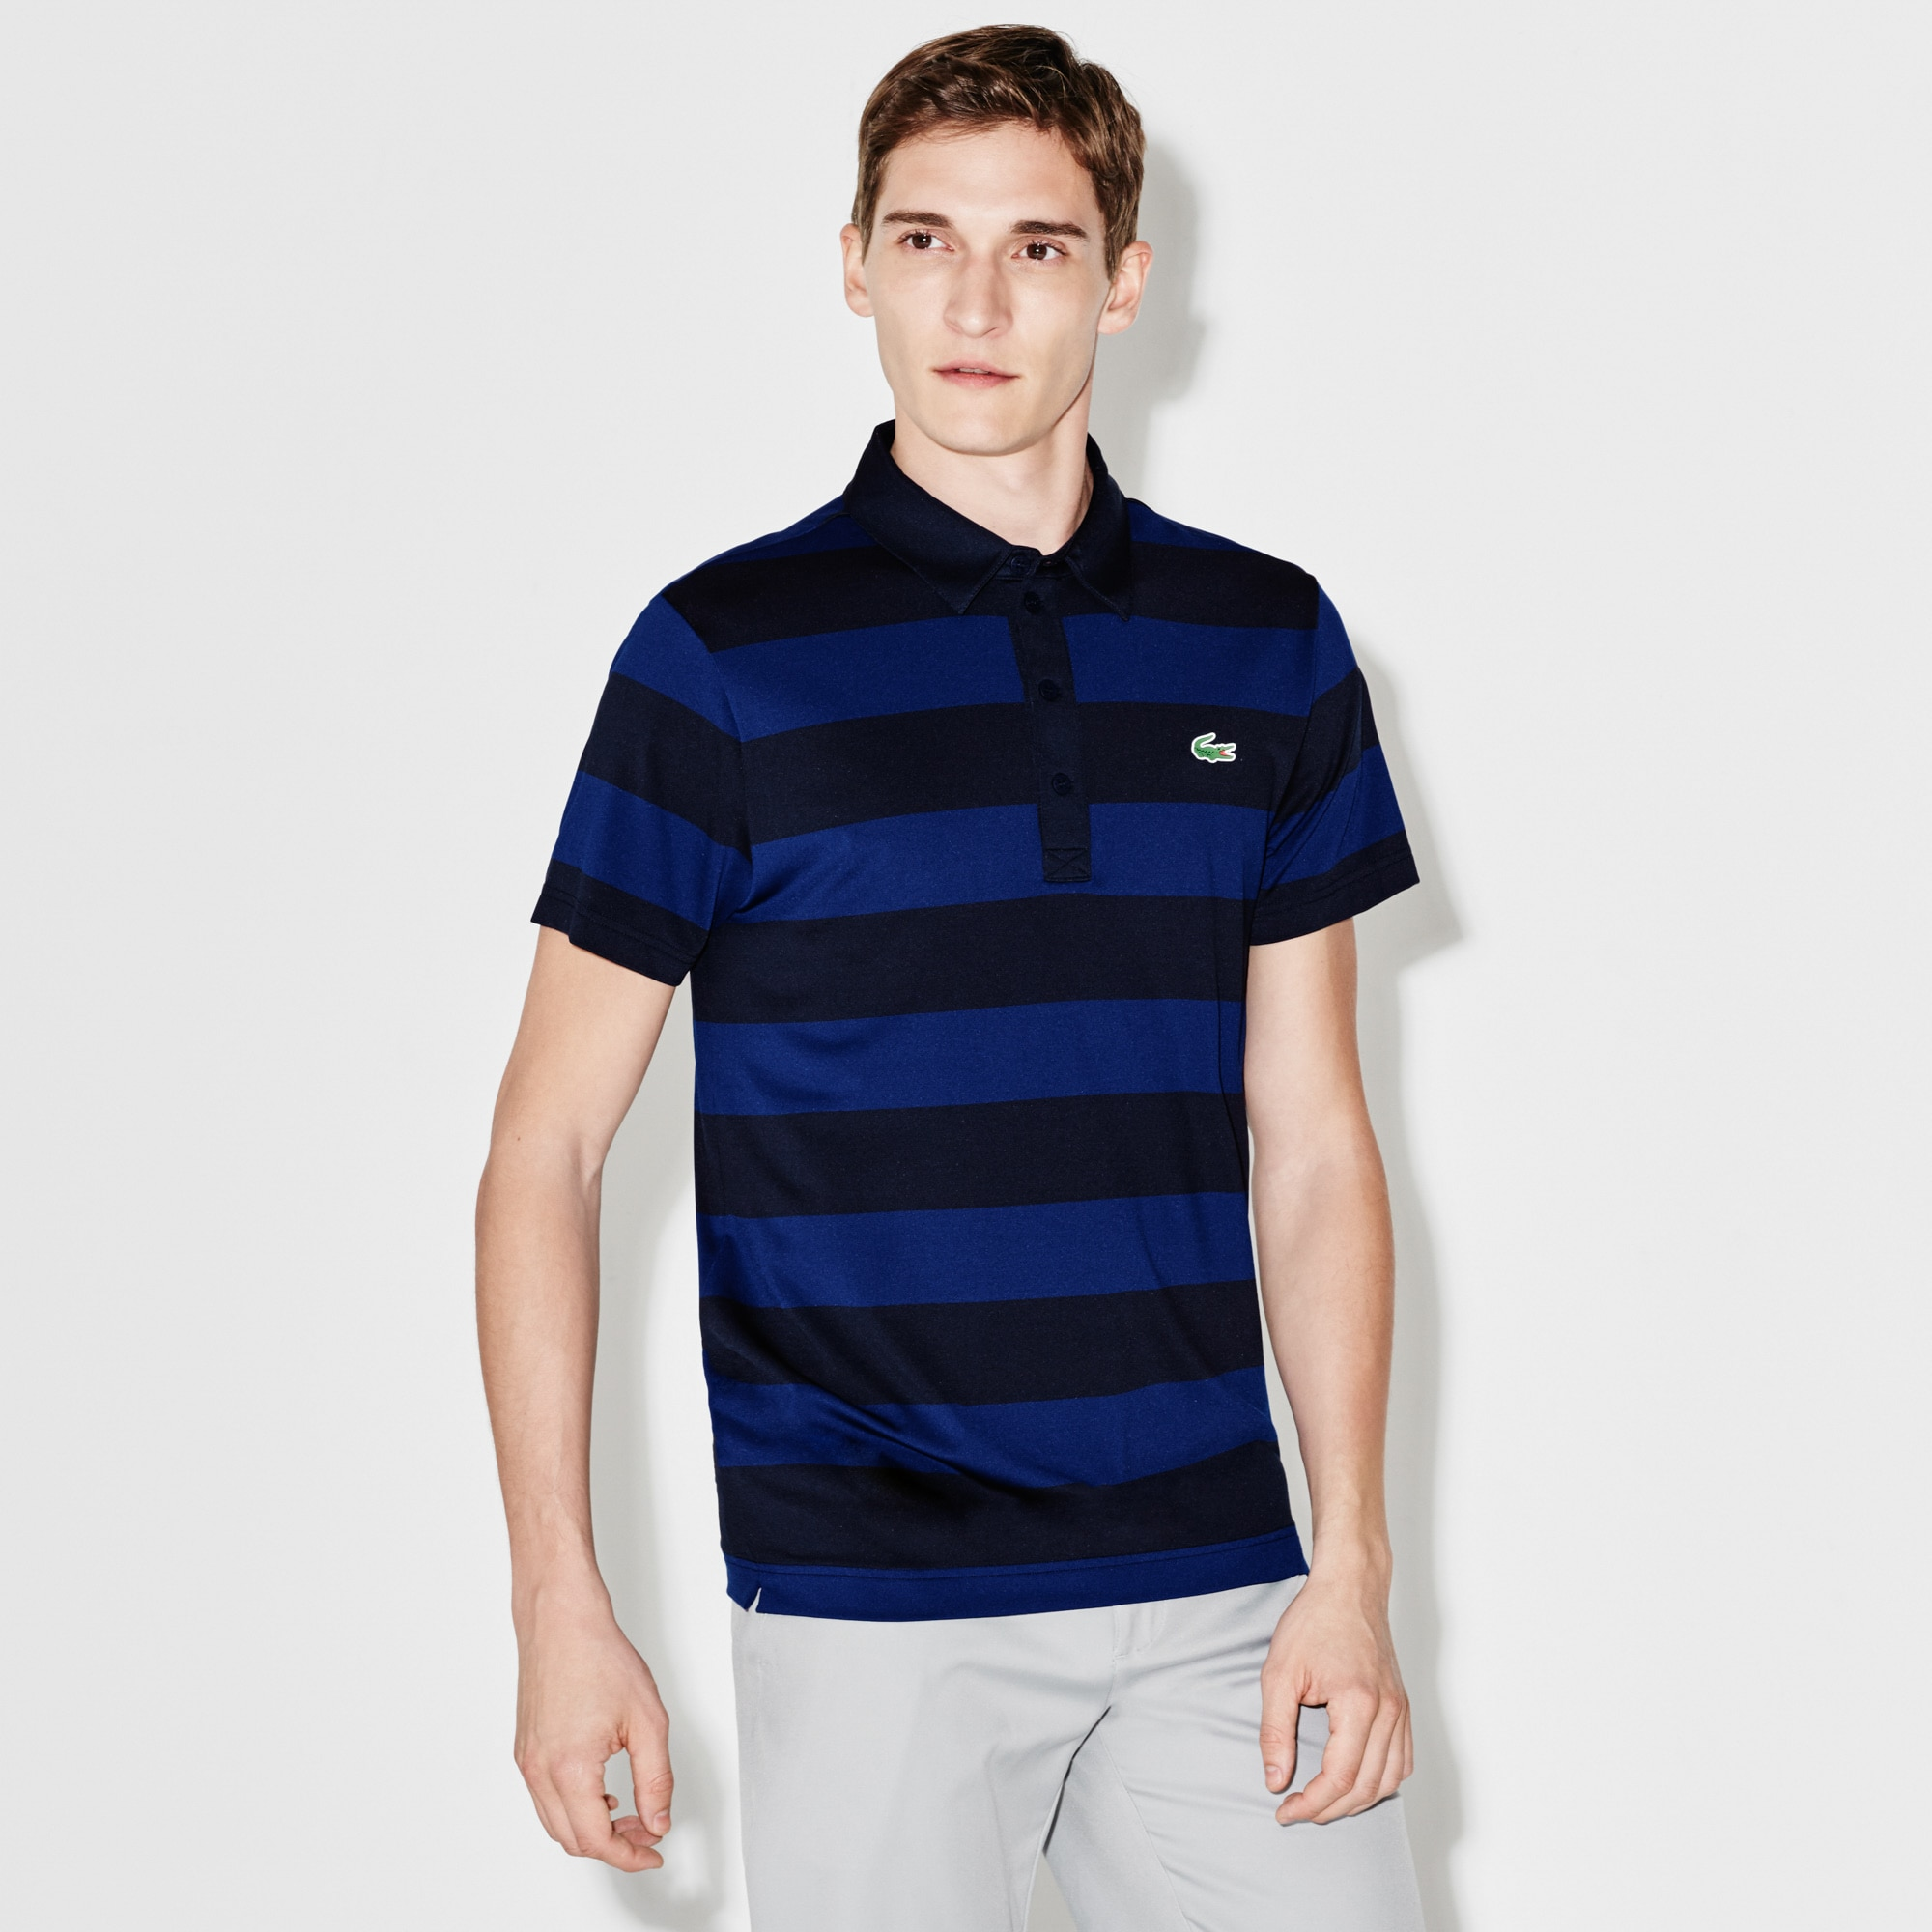 Men's  SPORT Golf Striped Stretch Tech Jersey Polo